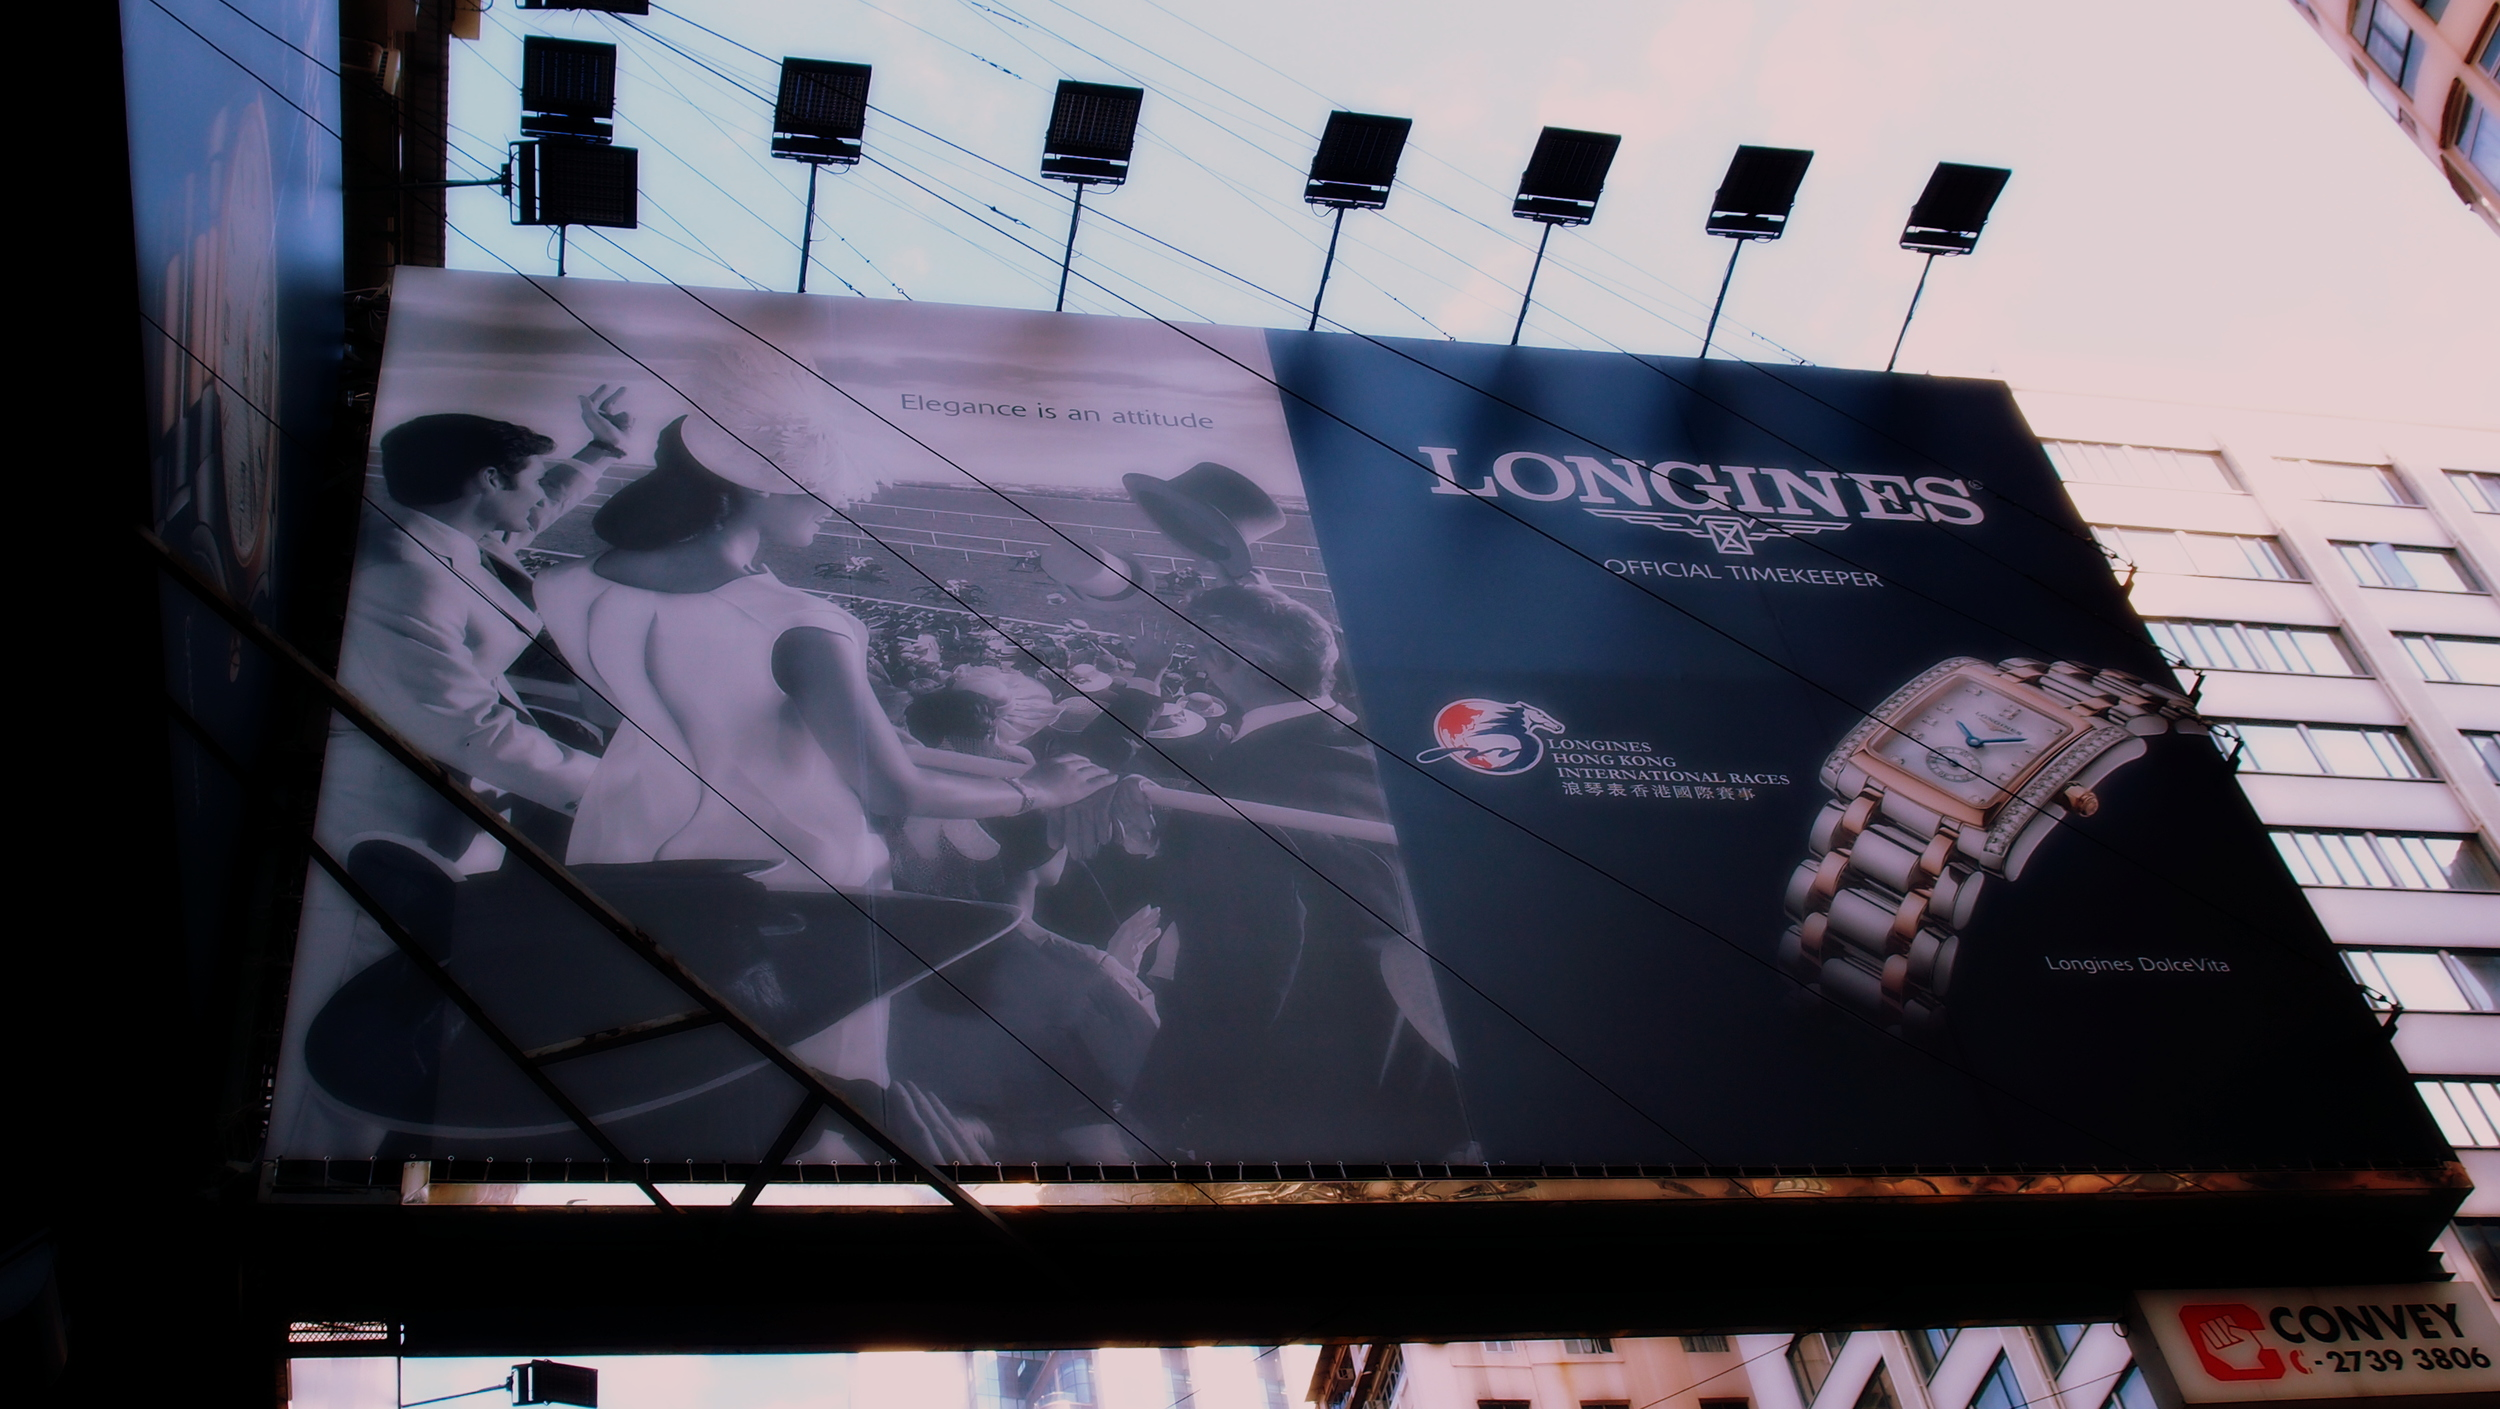 Longines watches have really taken off here but of interest only to the Mainland Chinese tourists not Hong Konger's